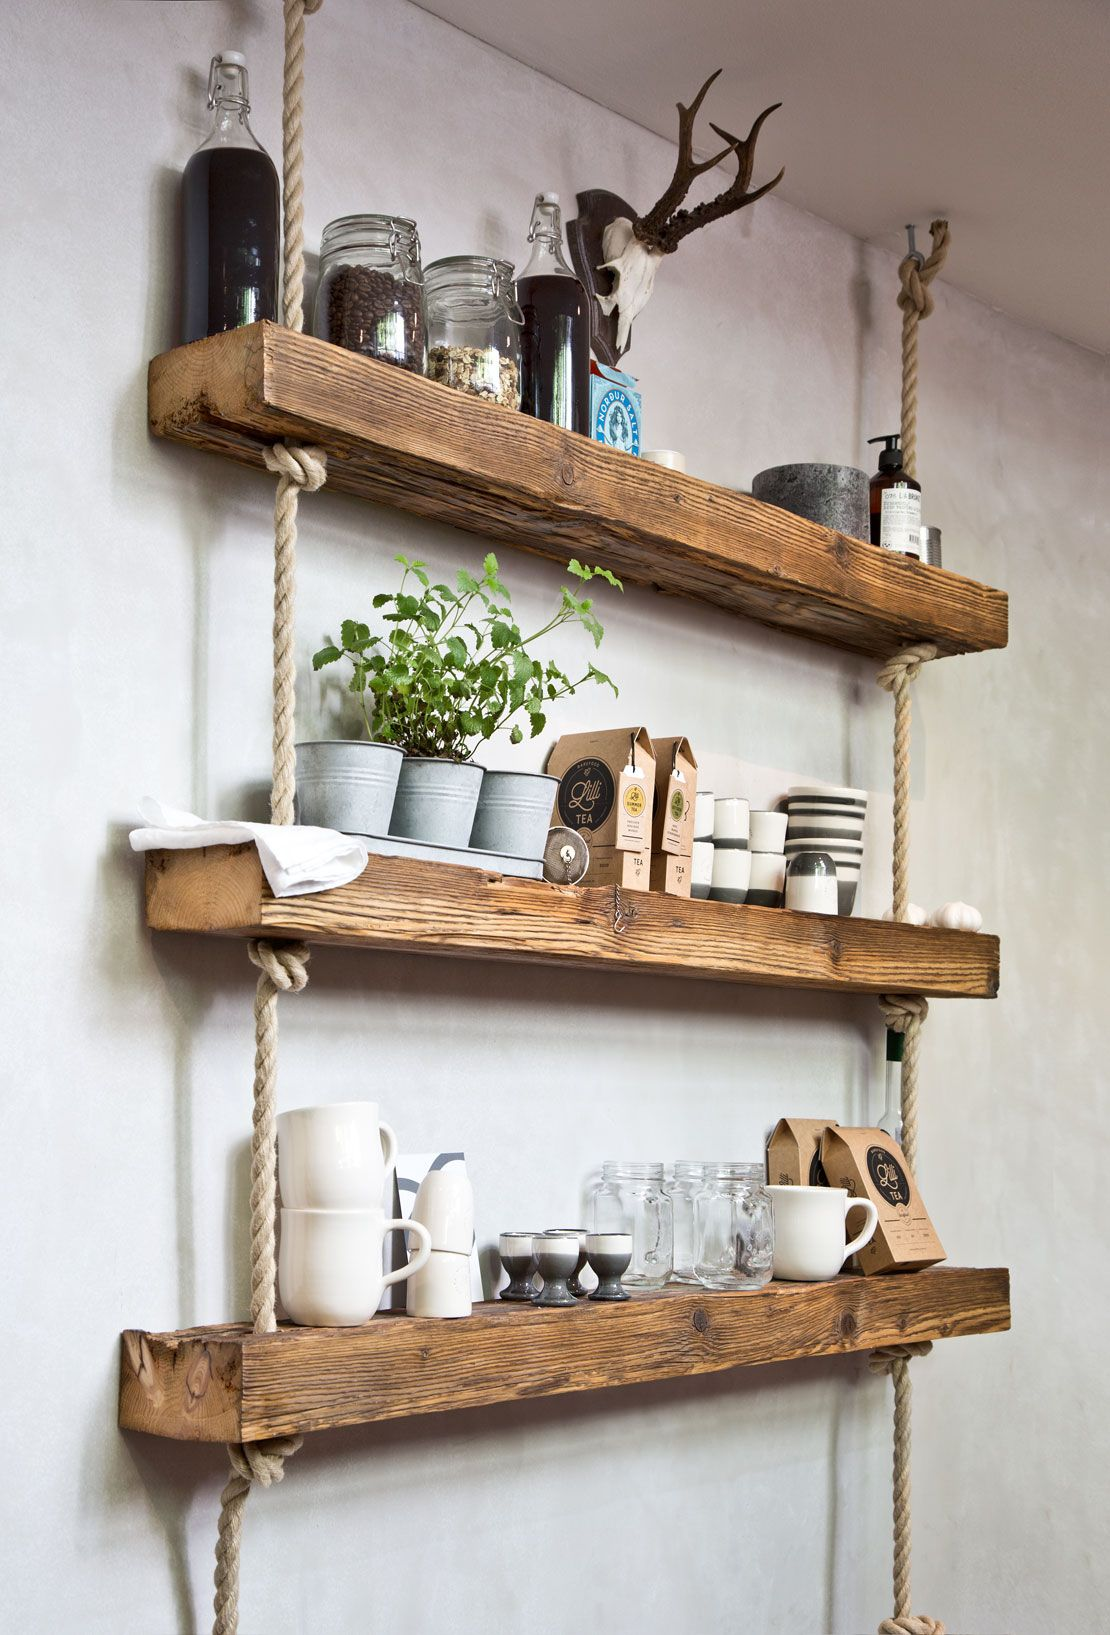 You like this idea? You need help to make Your home design? Find us ...